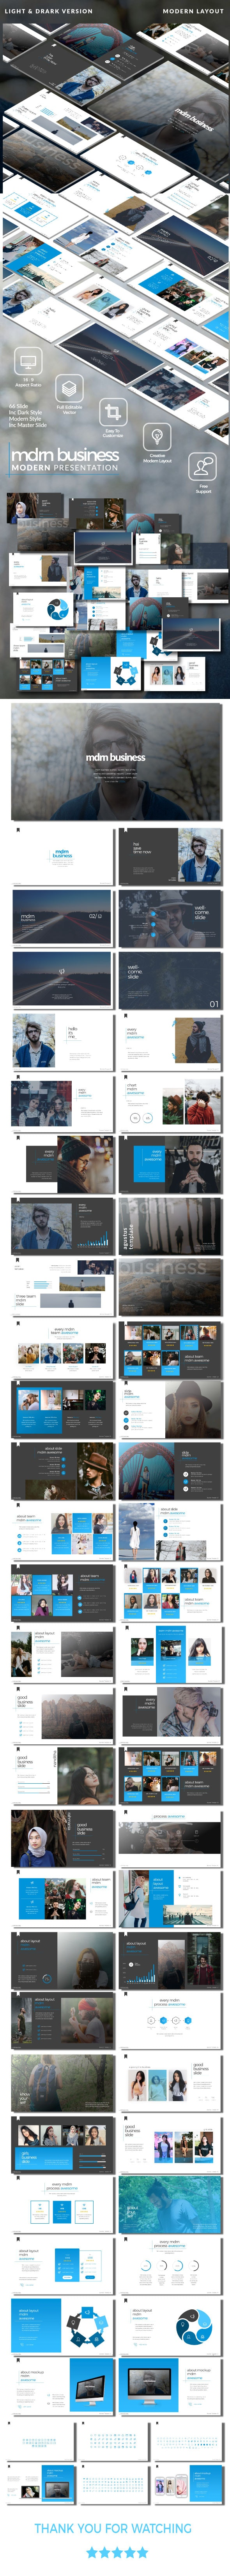 mdrn Business v.1 Modern Google Slide Template